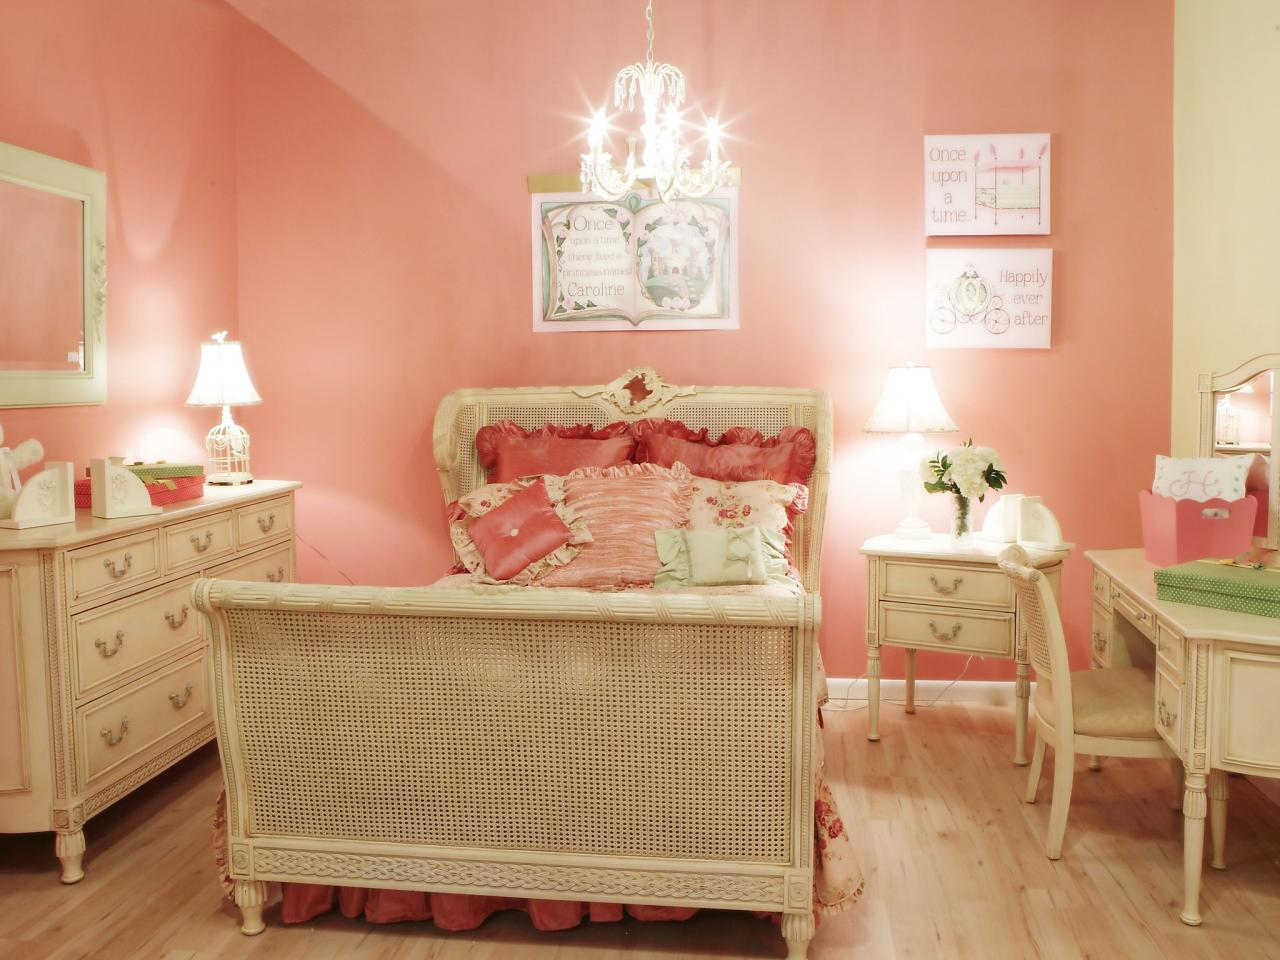 Bedroom paint ideas for girls -